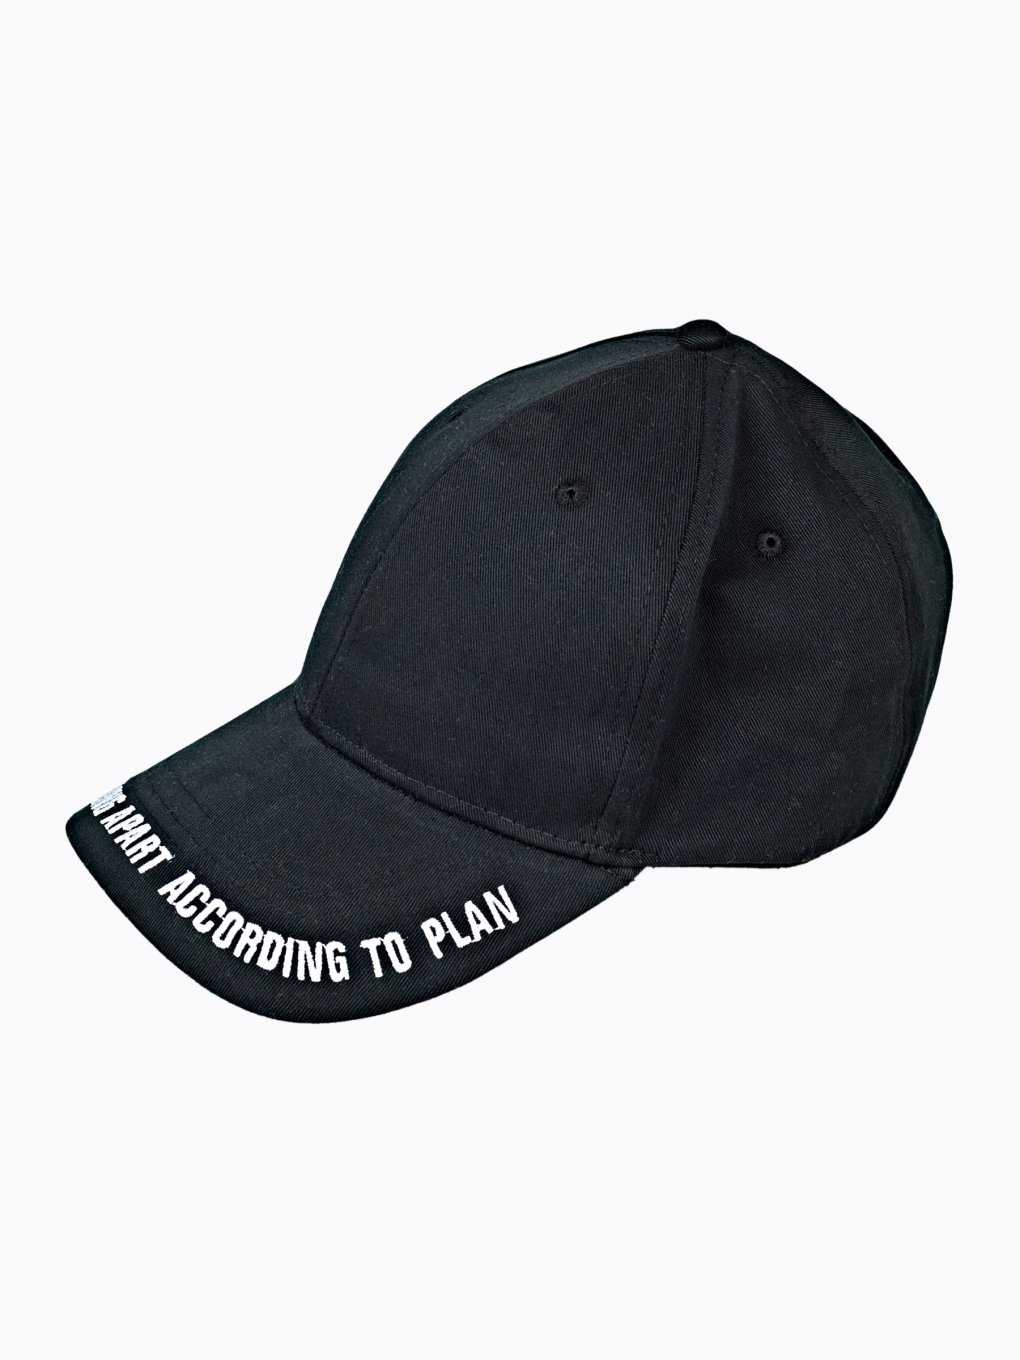 Baseball cap with message embroidery